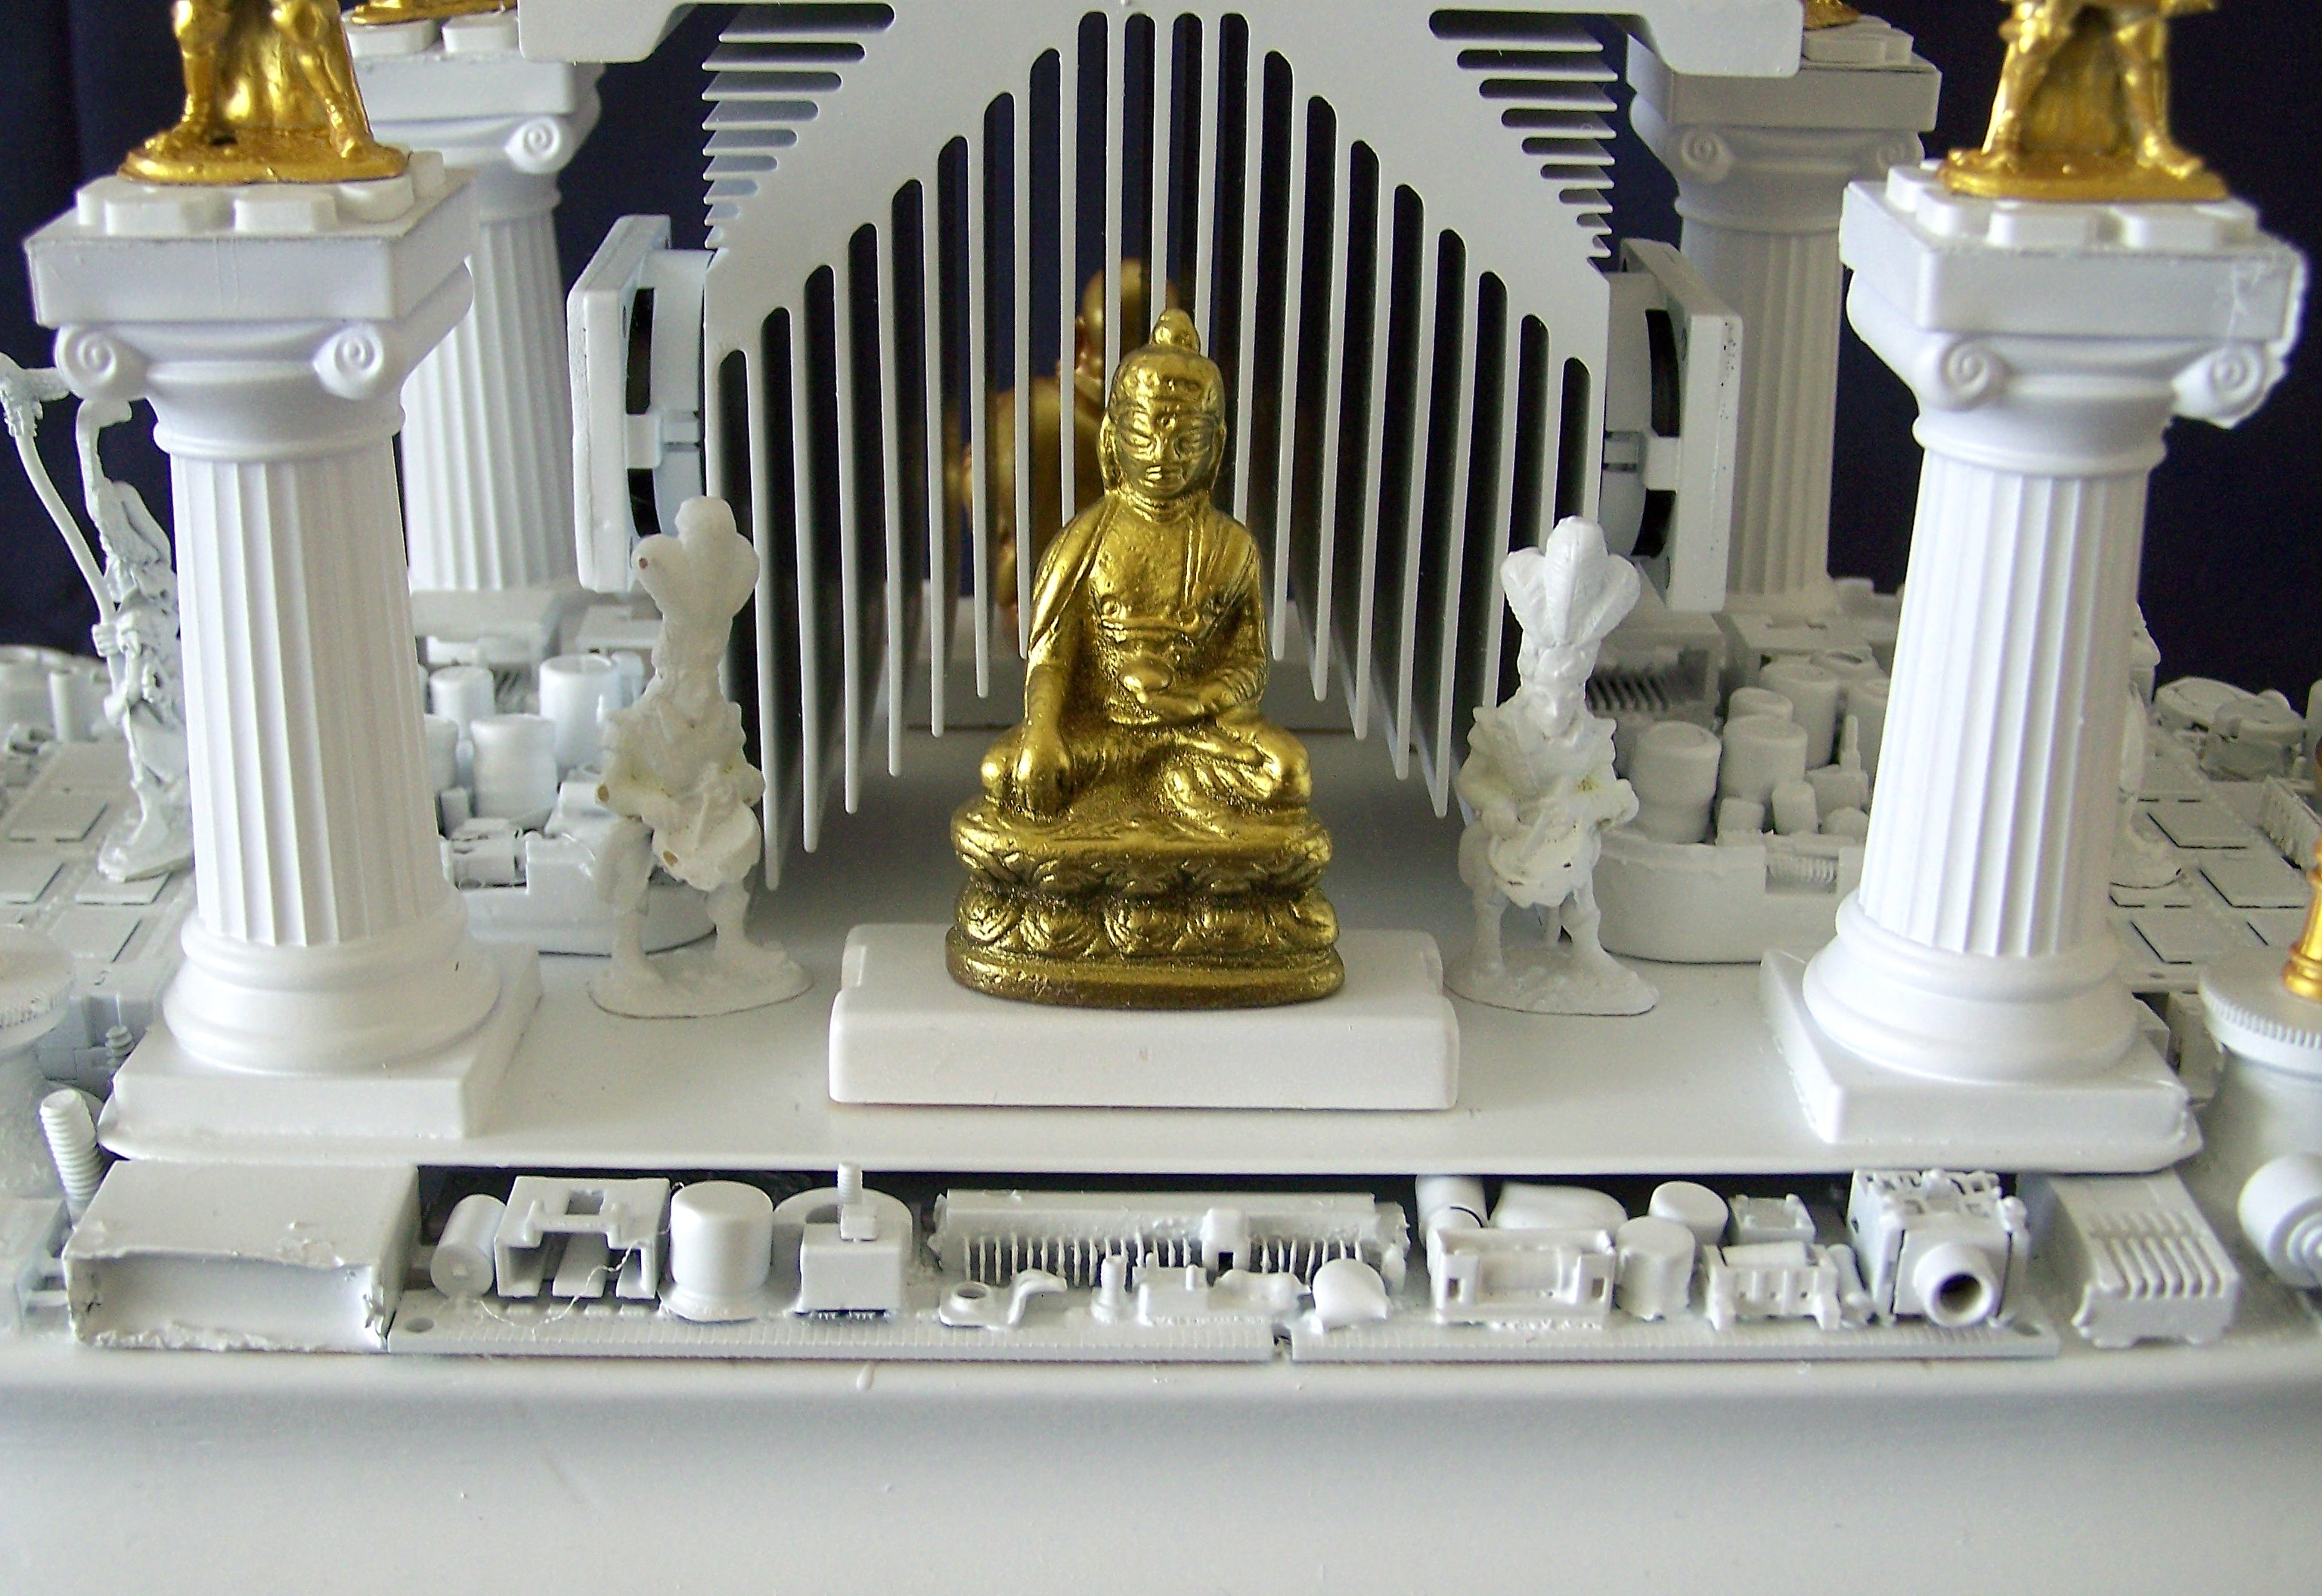 THE TEMPLE 4